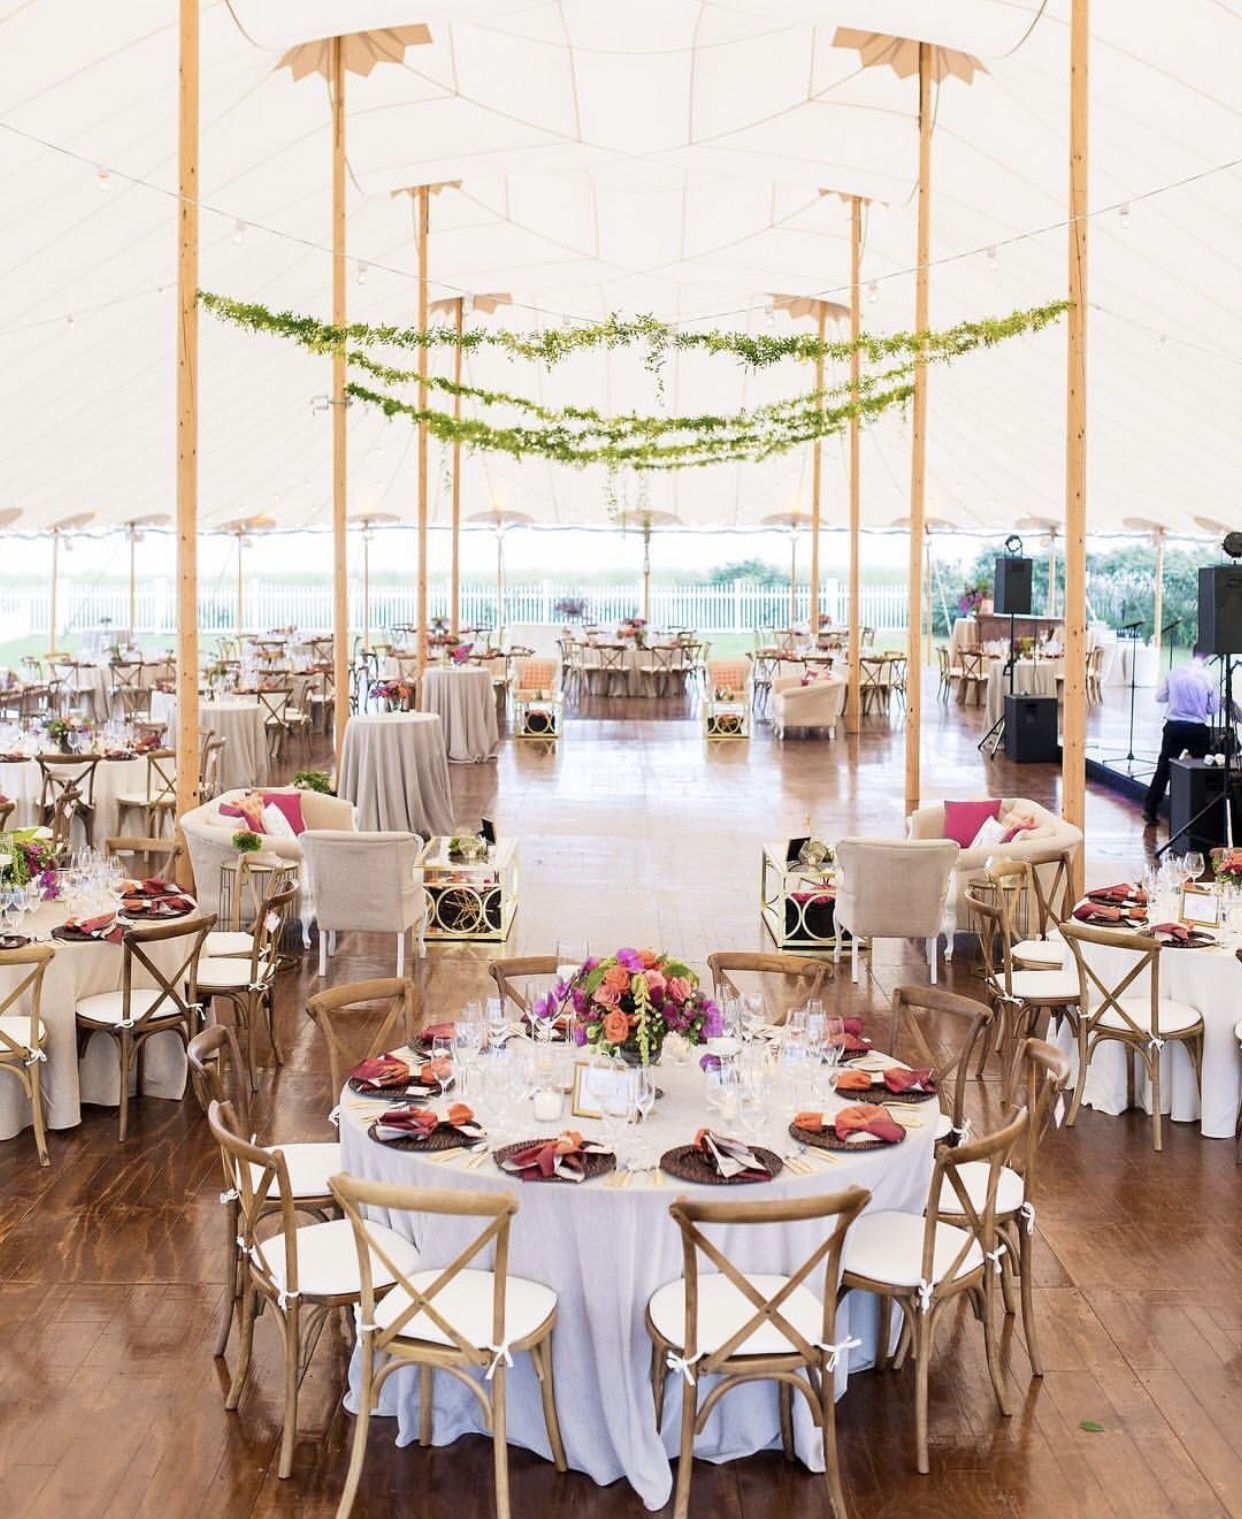 Pin by Meghan McCormick on One day.. Tent wedding